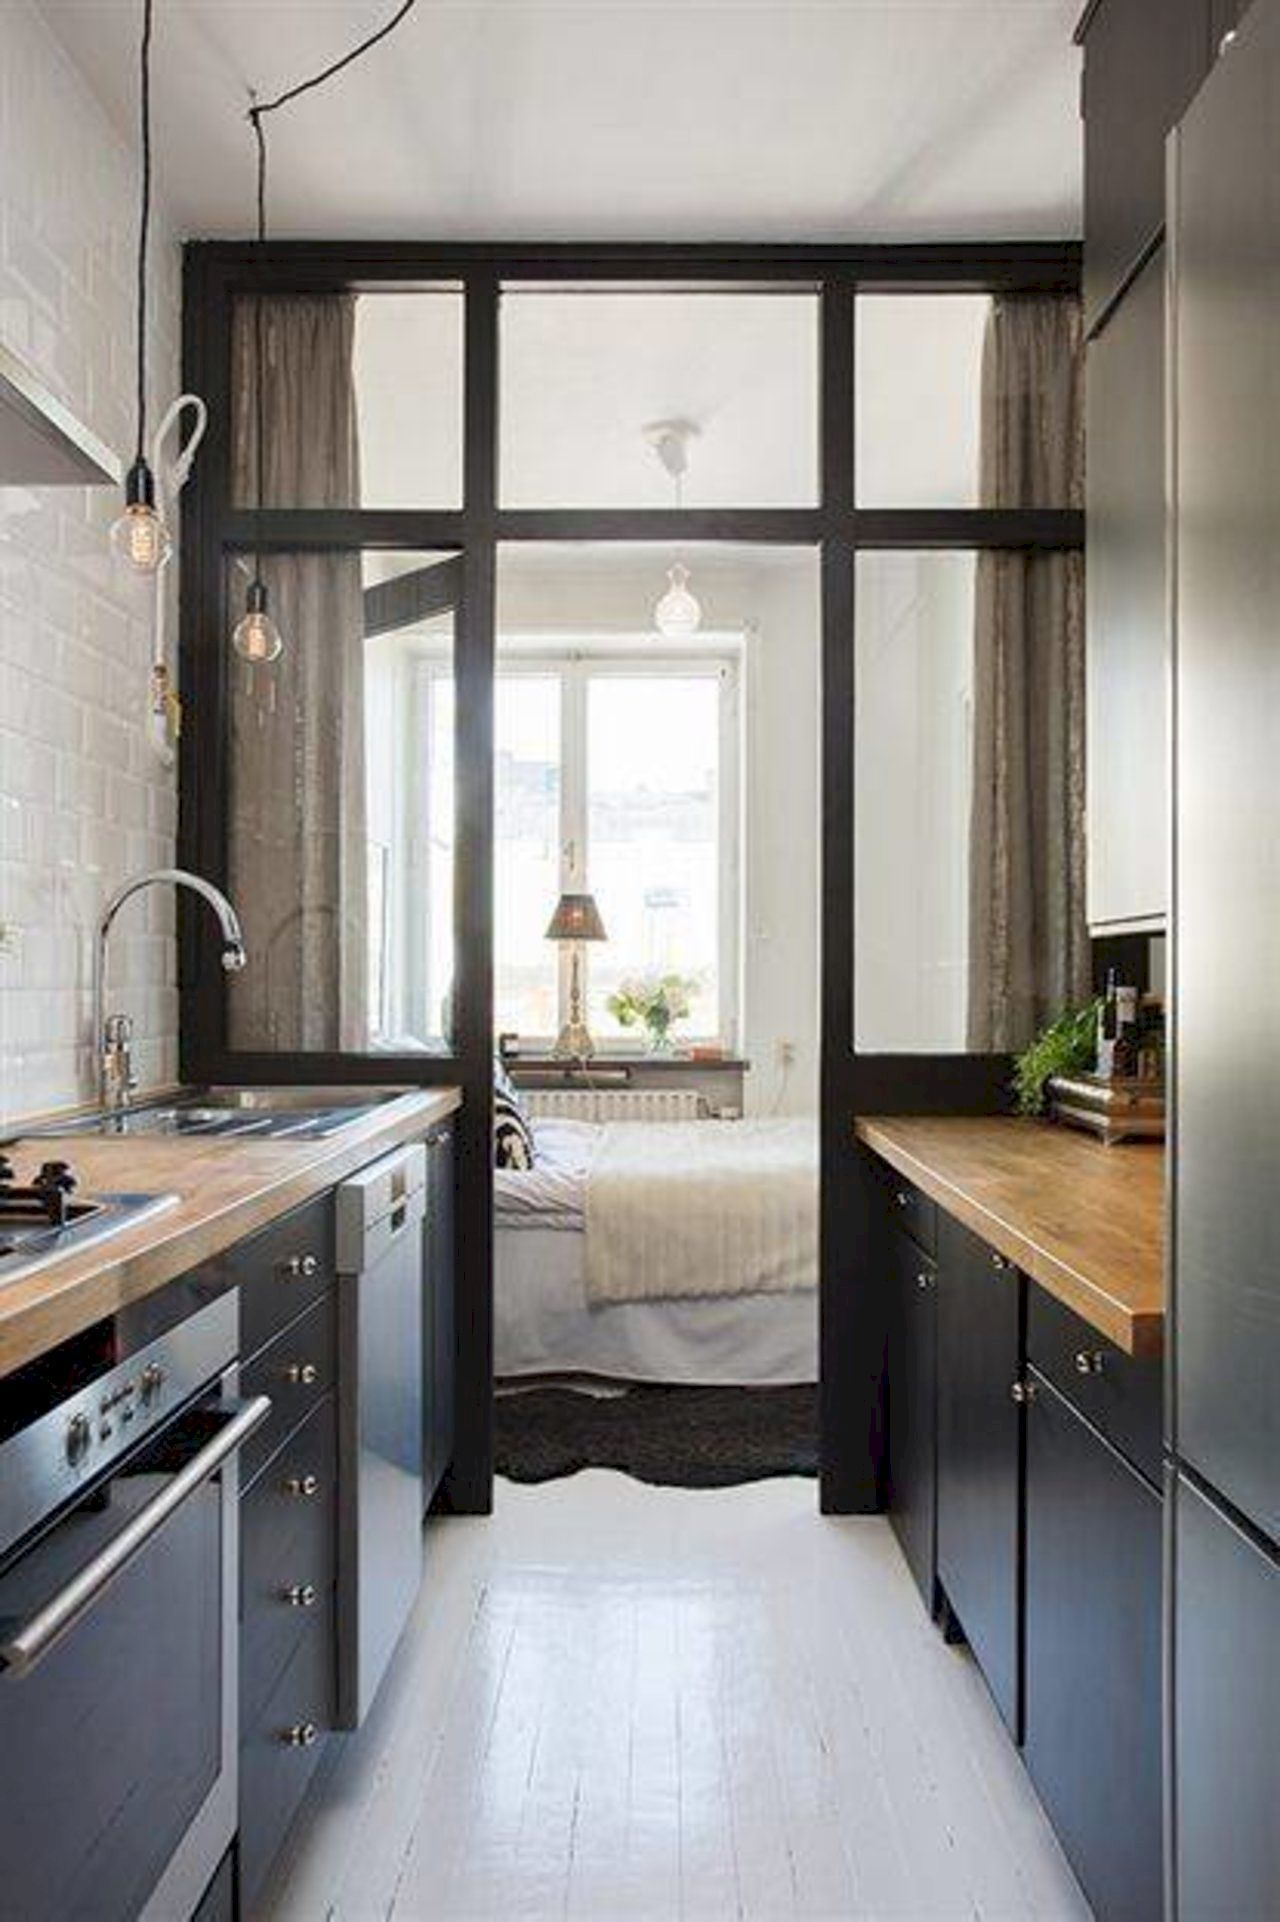 Top 10 Creative Modern Tiny House Interiors Decor We Could Actually ...